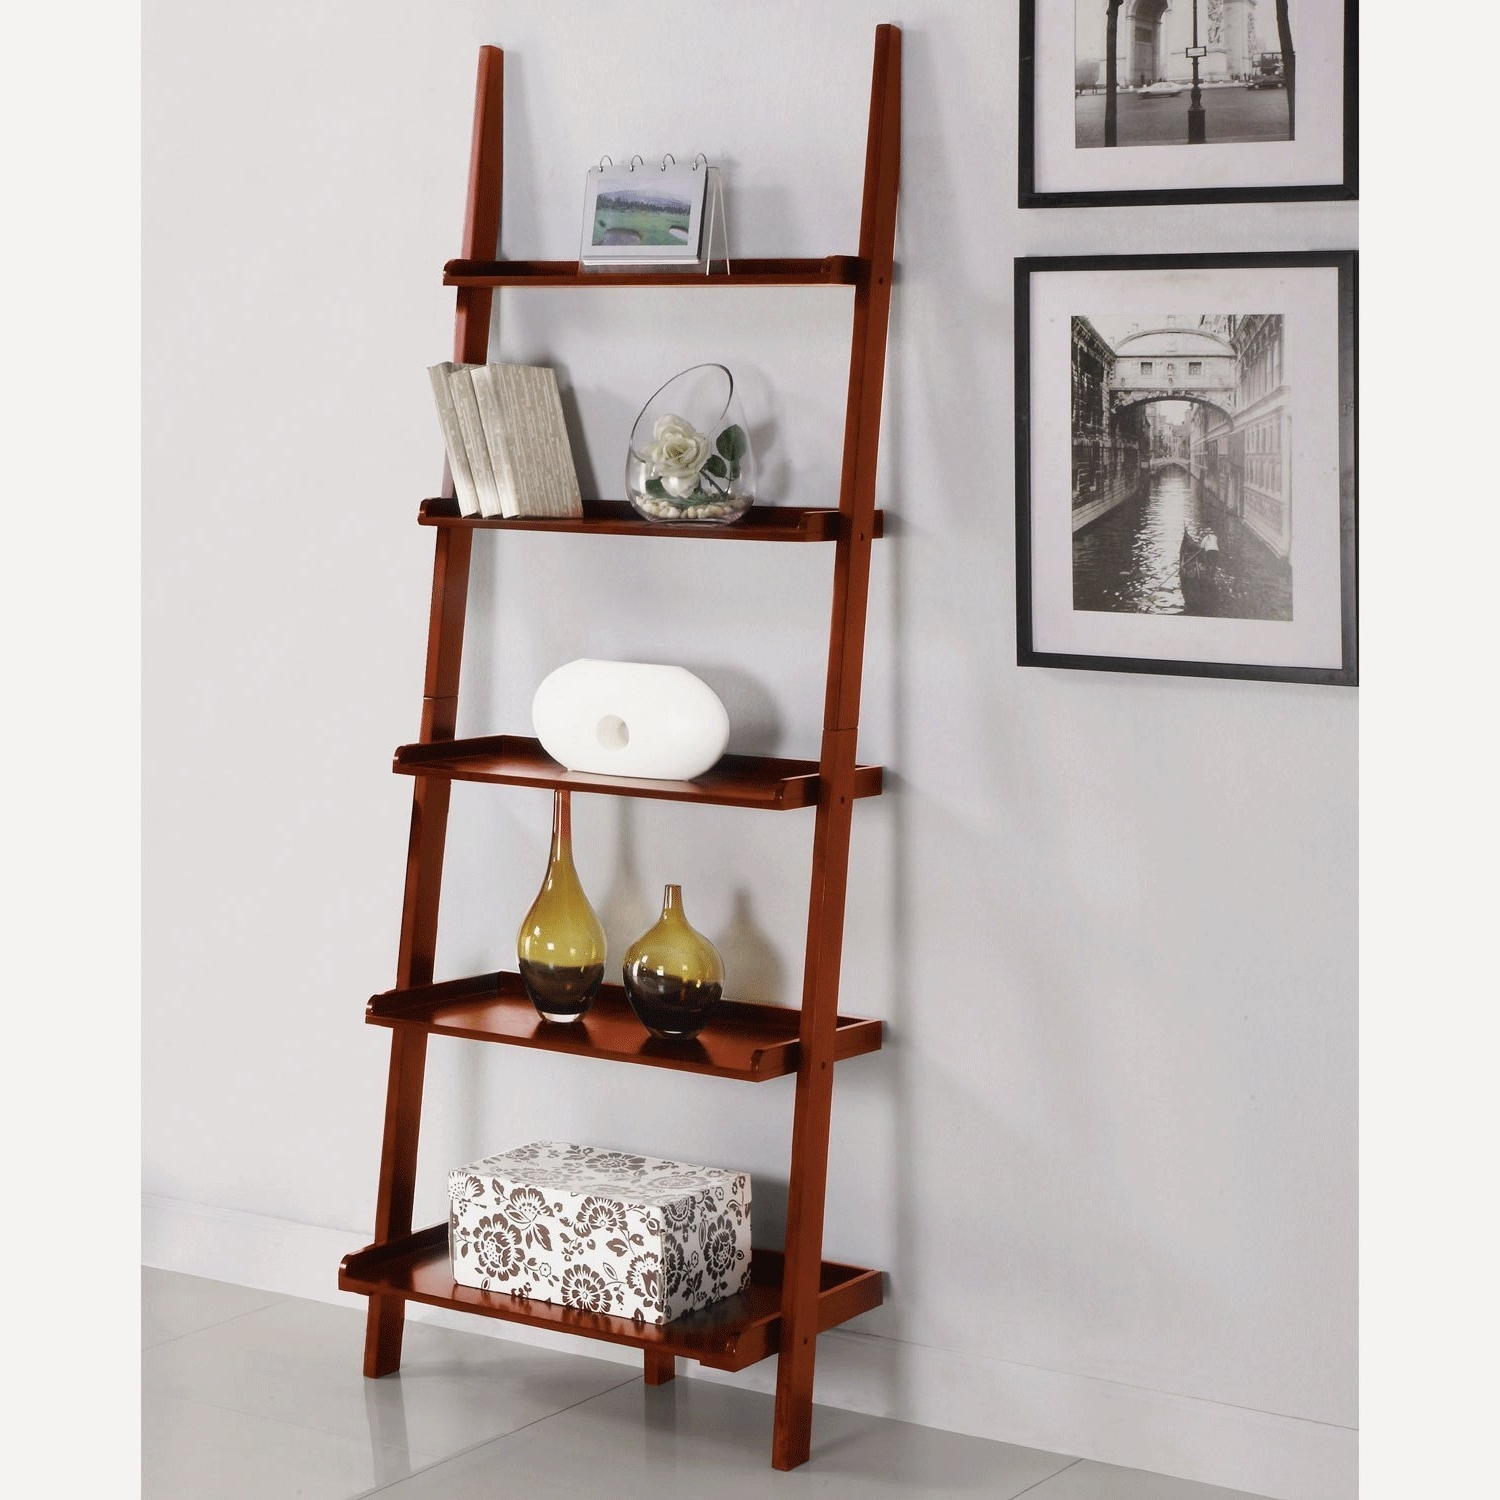 Leaning Bookcases Intended For Popular Top 22 Ladder Bookcase And Bookshelf Collection For Your Interiors (View 3 of 15)